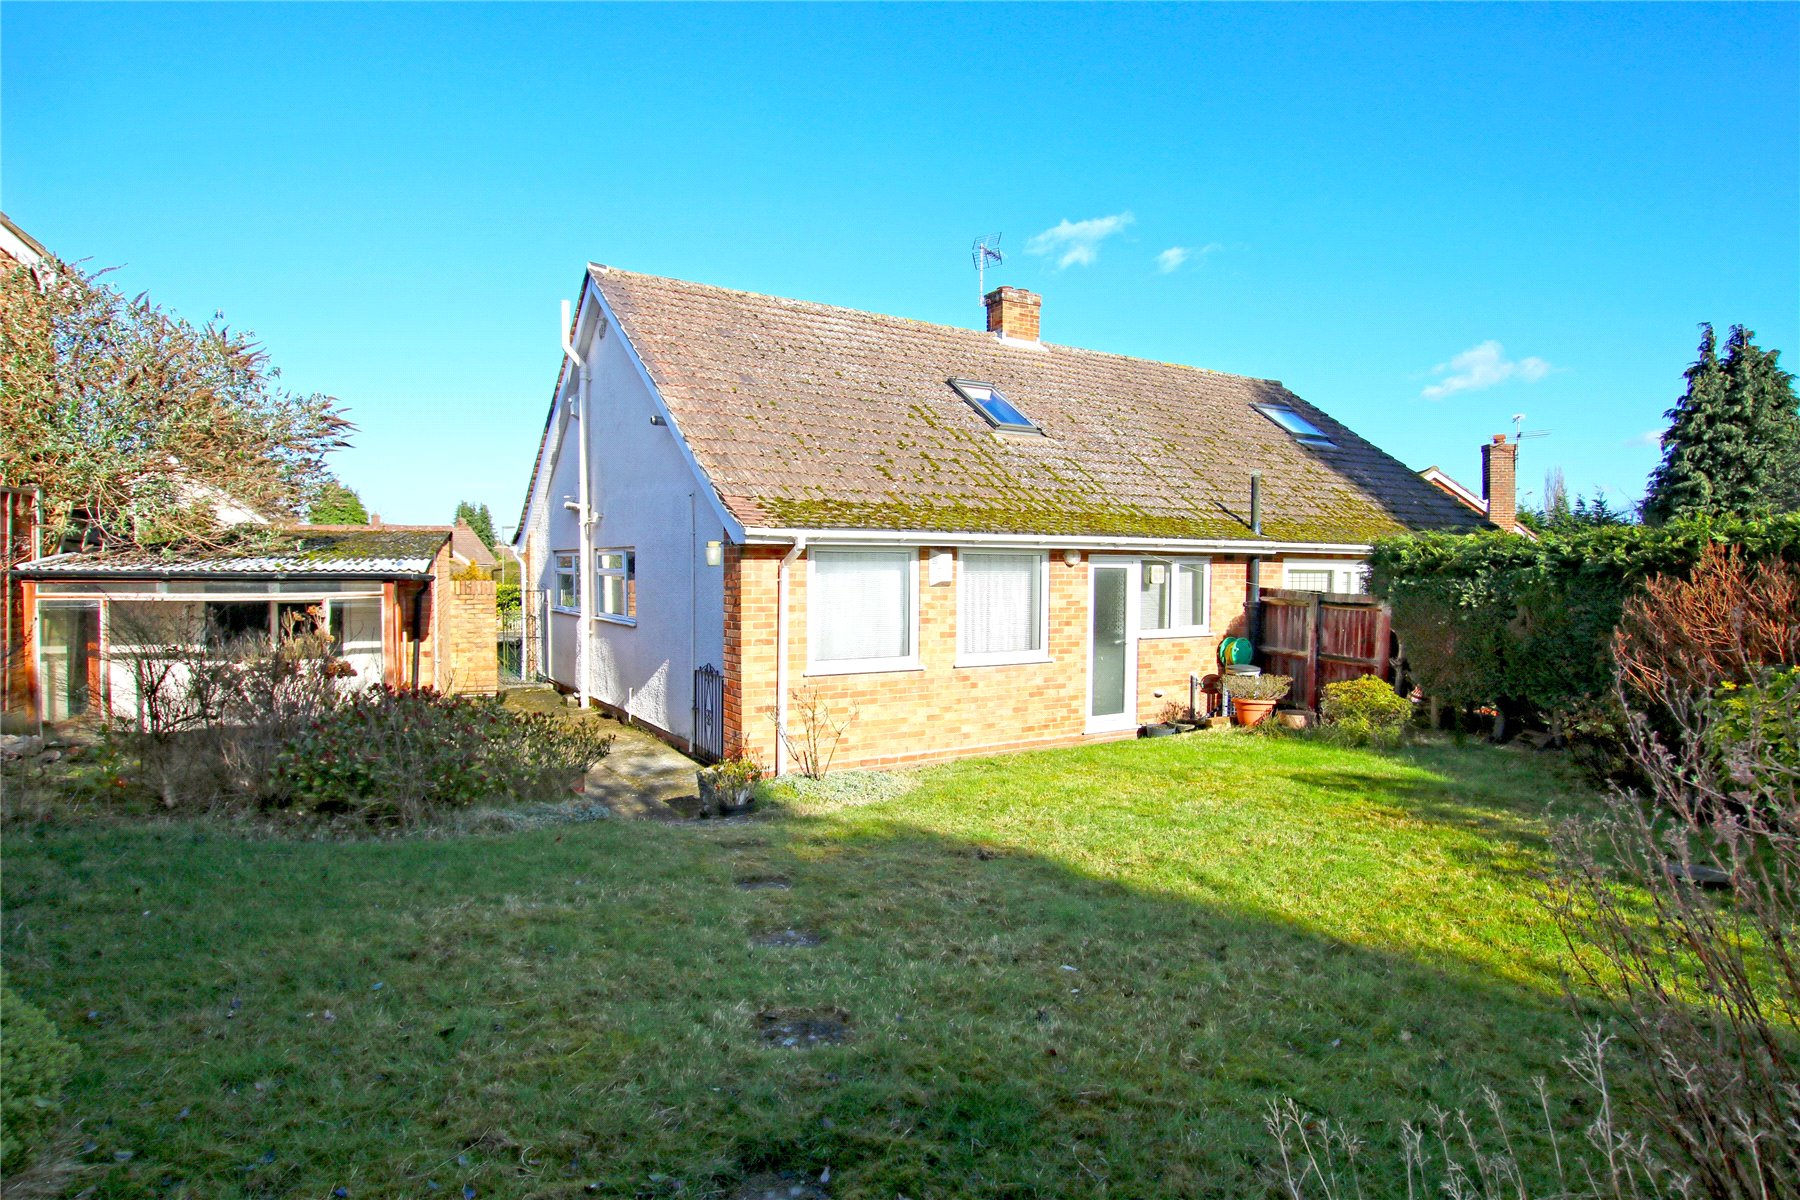 3 Bedrooms Semi Detached House for sale in Boltons Close, Pyrford, Surrey, GU22